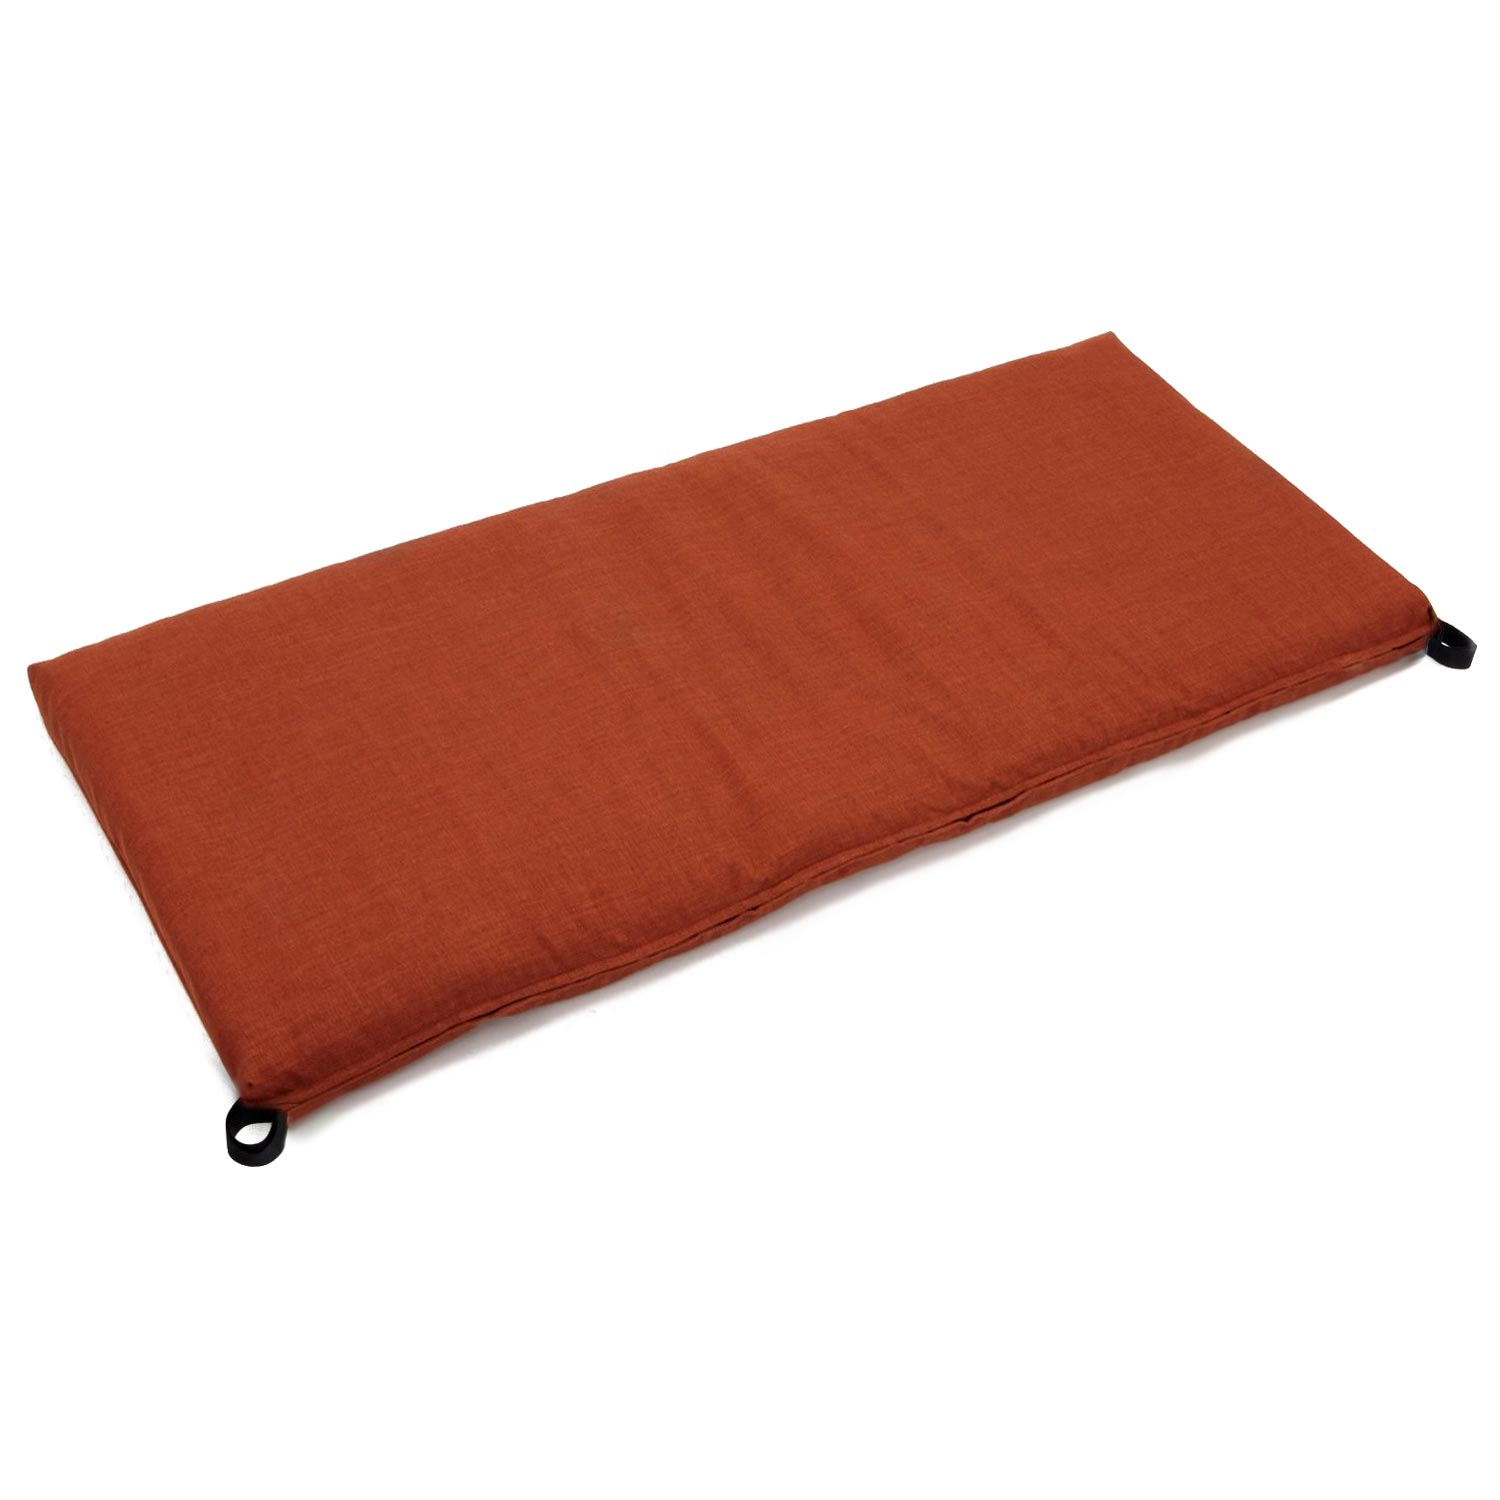 "42"" x 19"" Patio Bench / Swing Cushion - Solid Color Fabric - BLZ-942X19-REO-S"